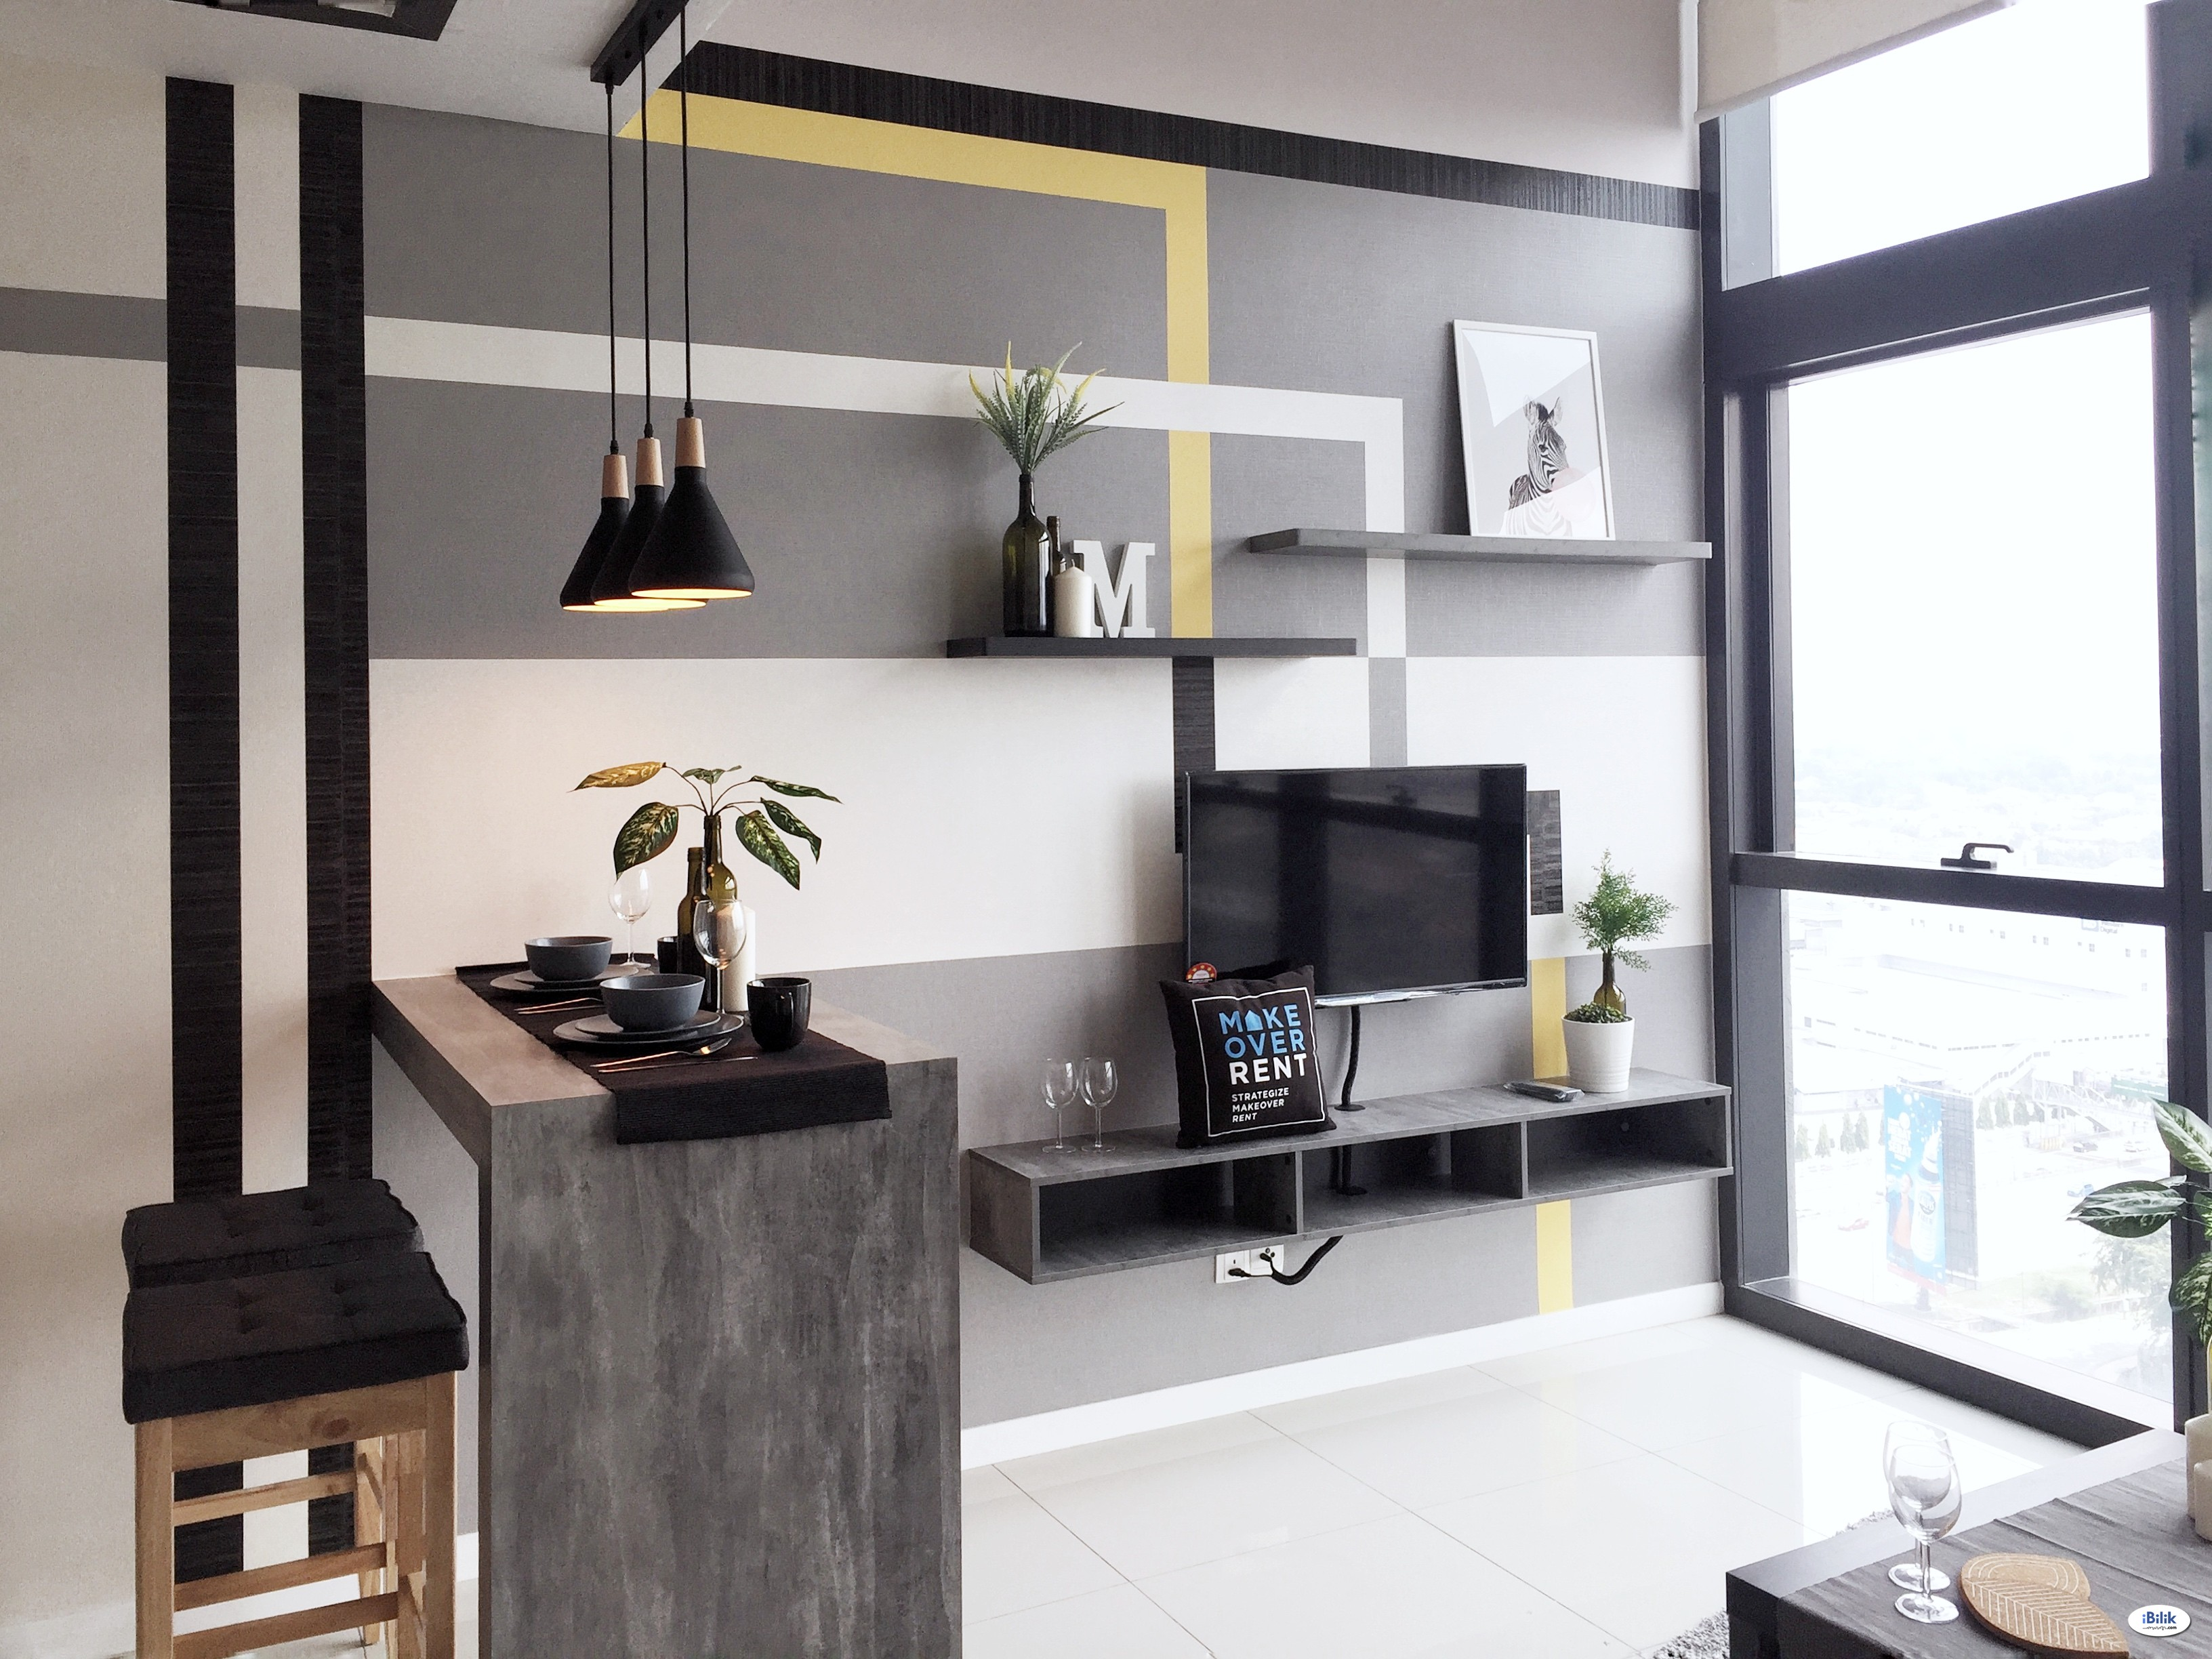 2-6Pax Designed Loft at Icon City, PJ - 5mins to Sunway Pyramids